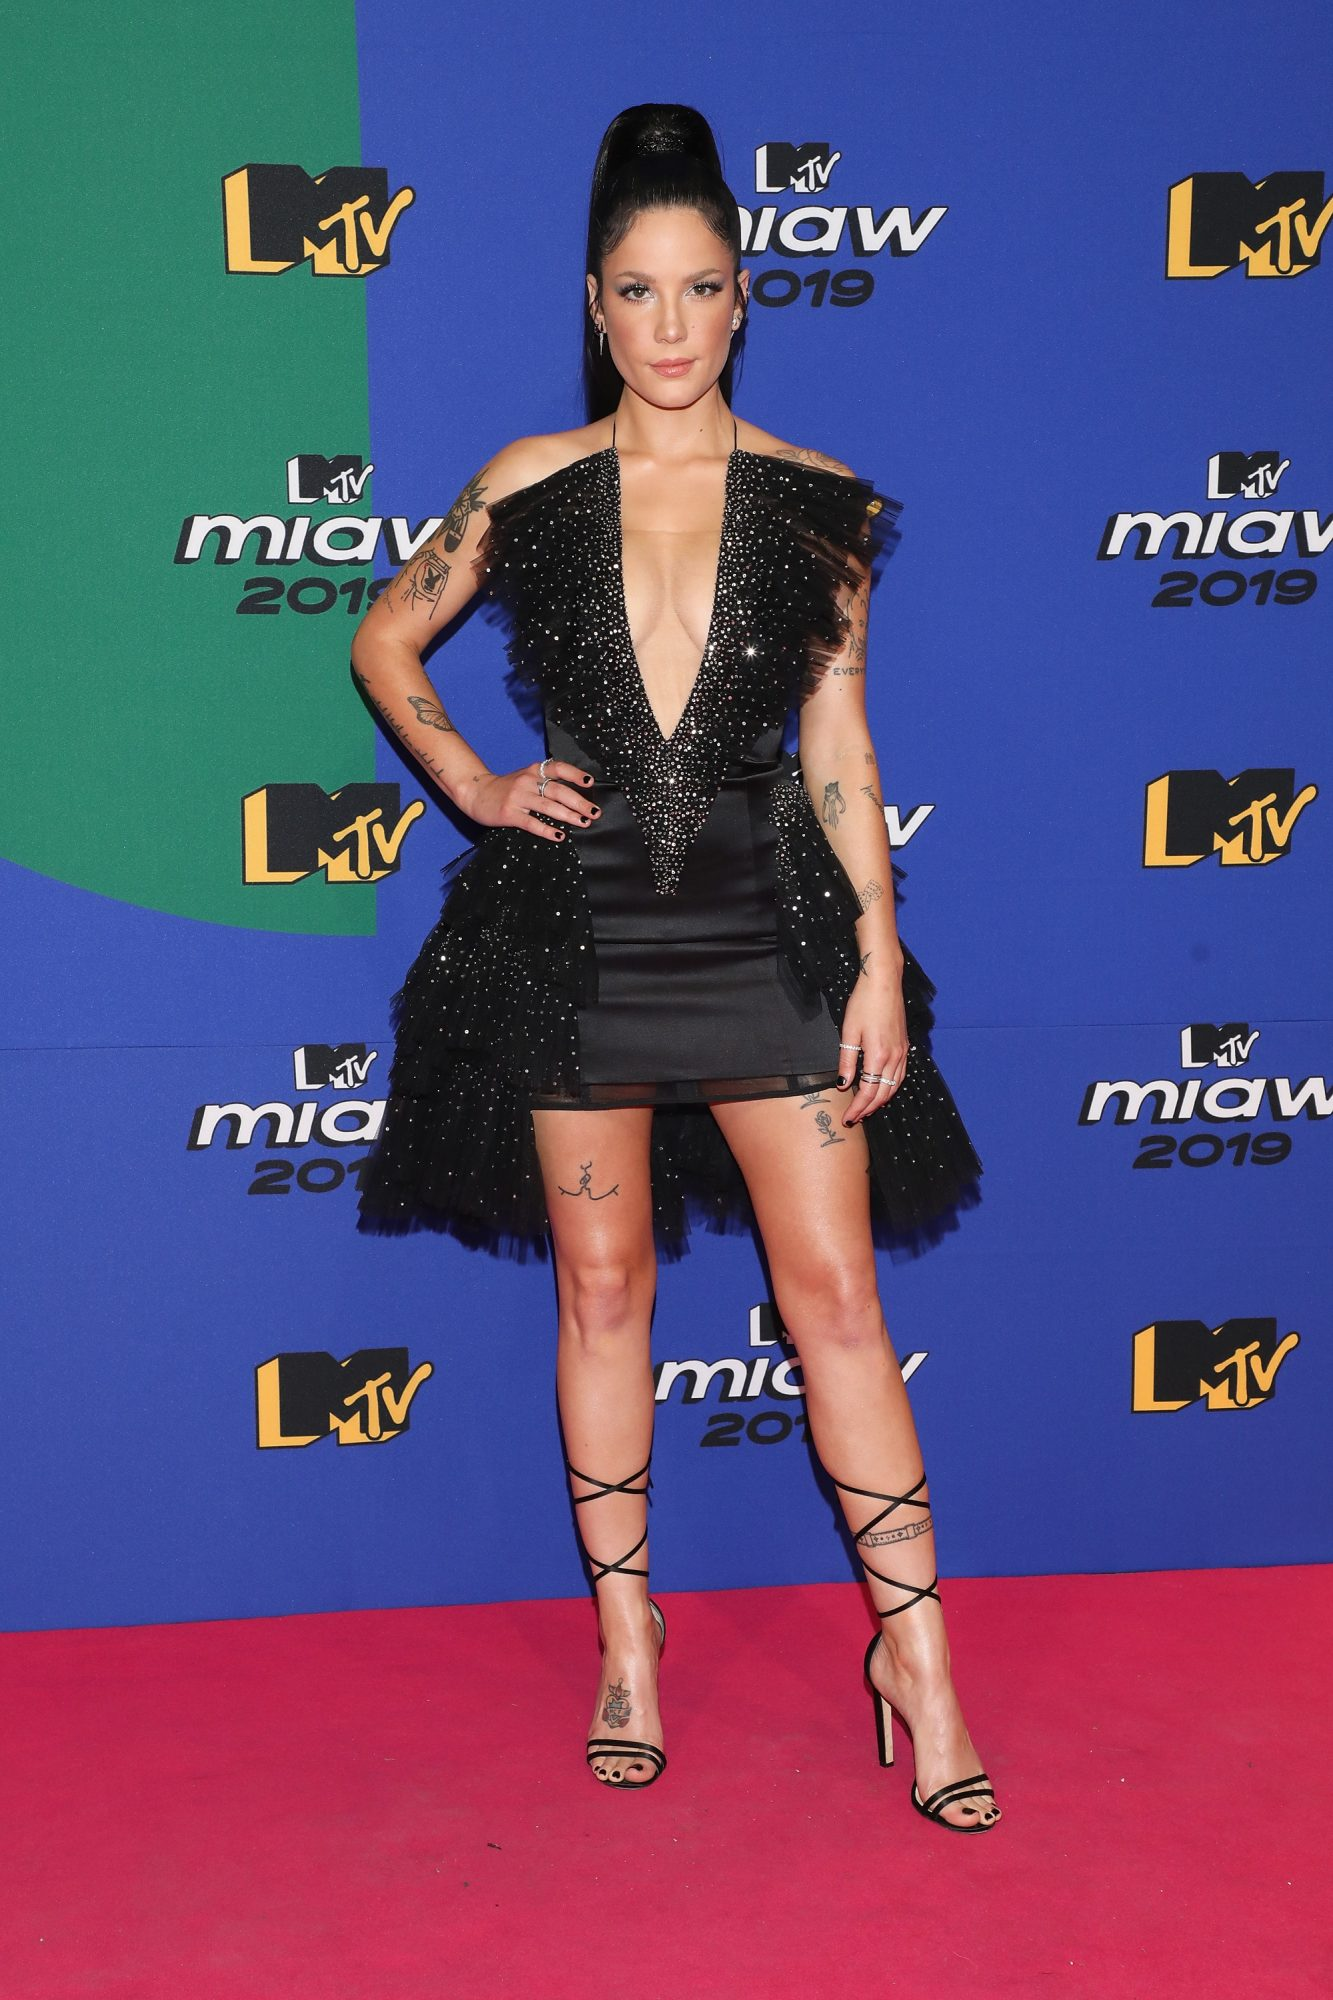 MTV MIAW Awards